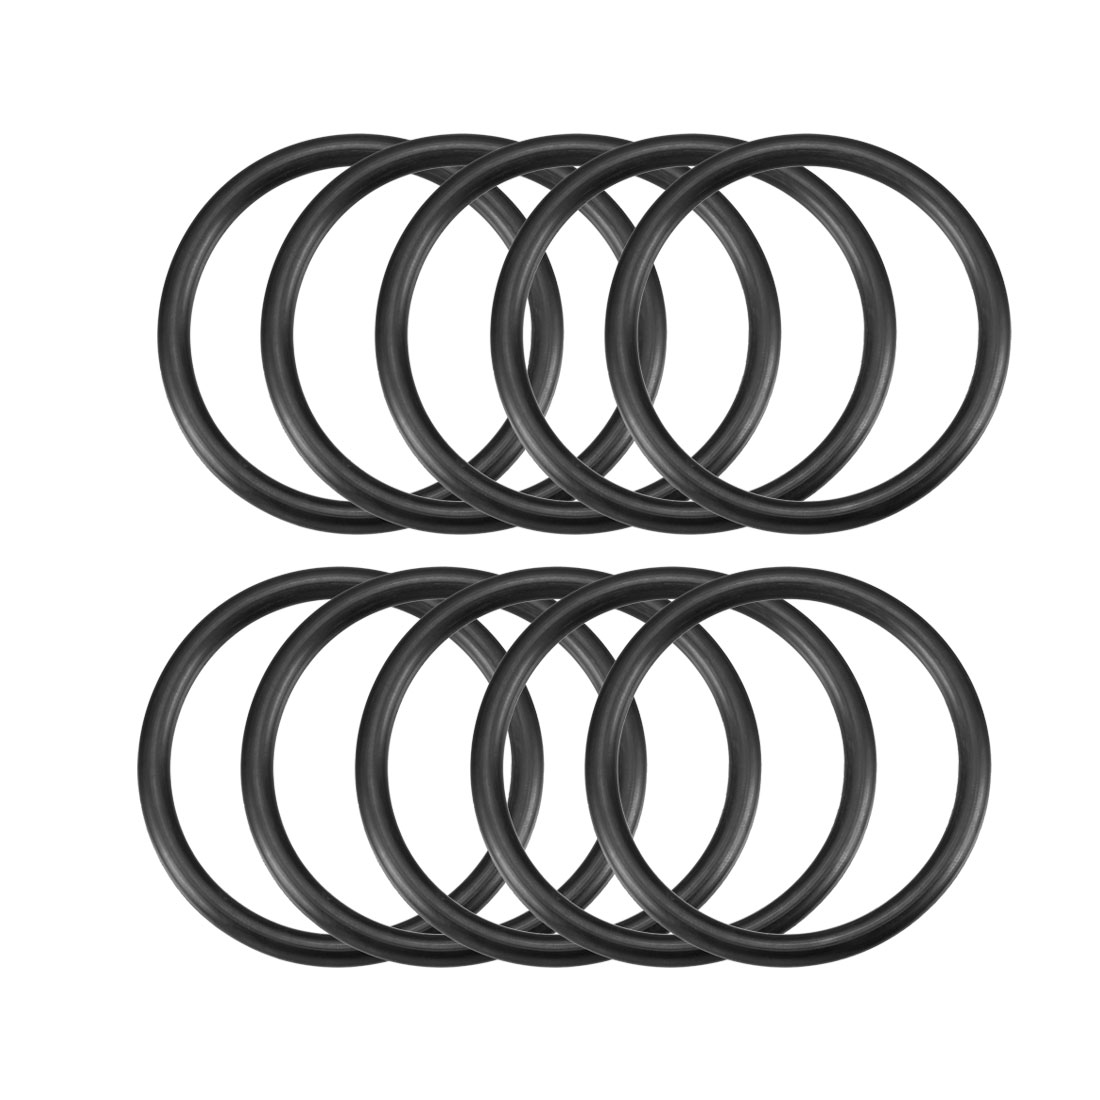 5mm x 62mm Black Nitrile Rubber Sealing O Ring Seal Washer Grommets 10 Pcs